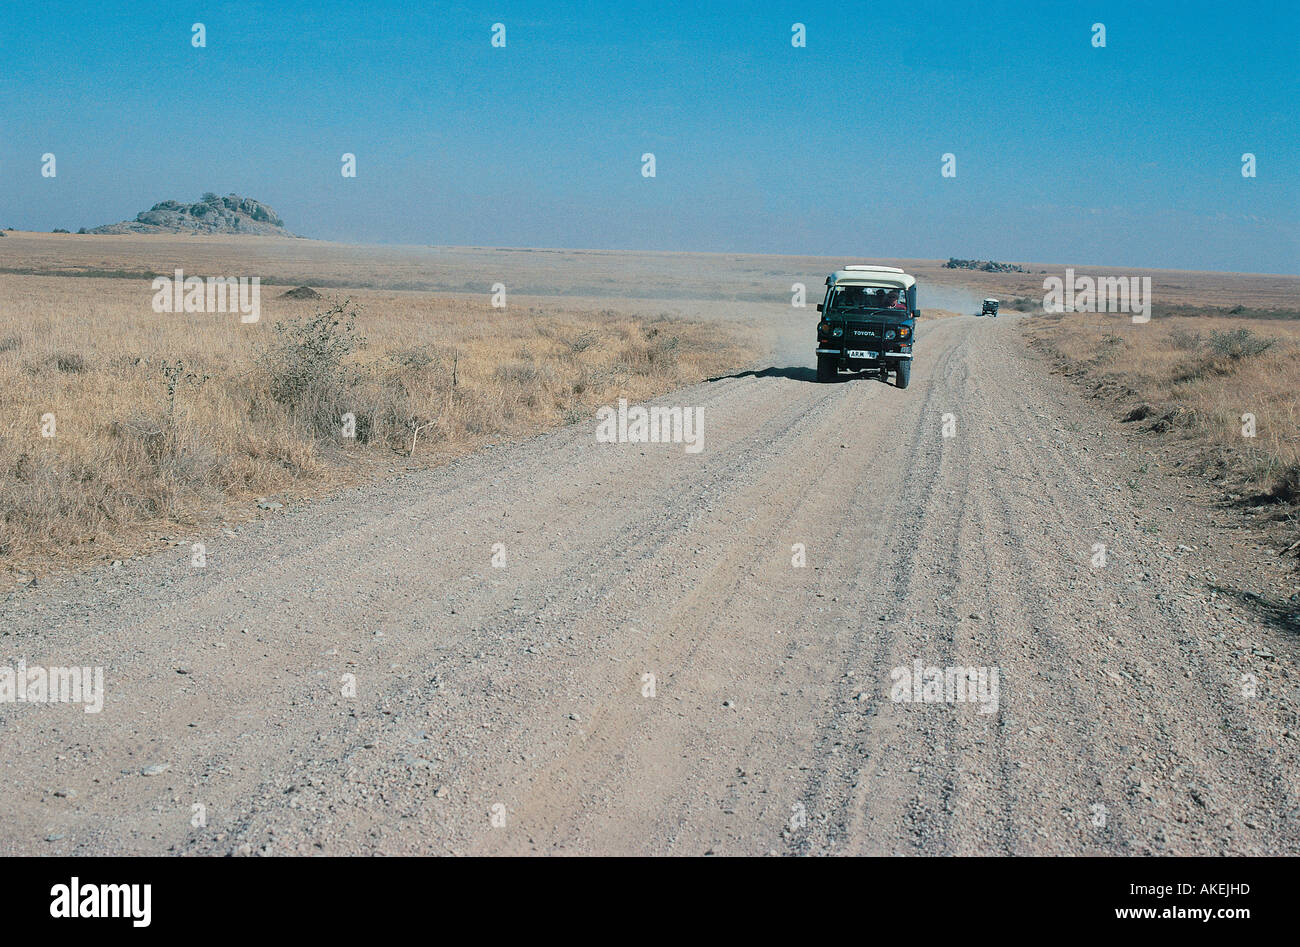 Toyota Landcruiser motoring across the Serengeti Plain in Tanzania East Africa A second car is following in the distance - Stock Image